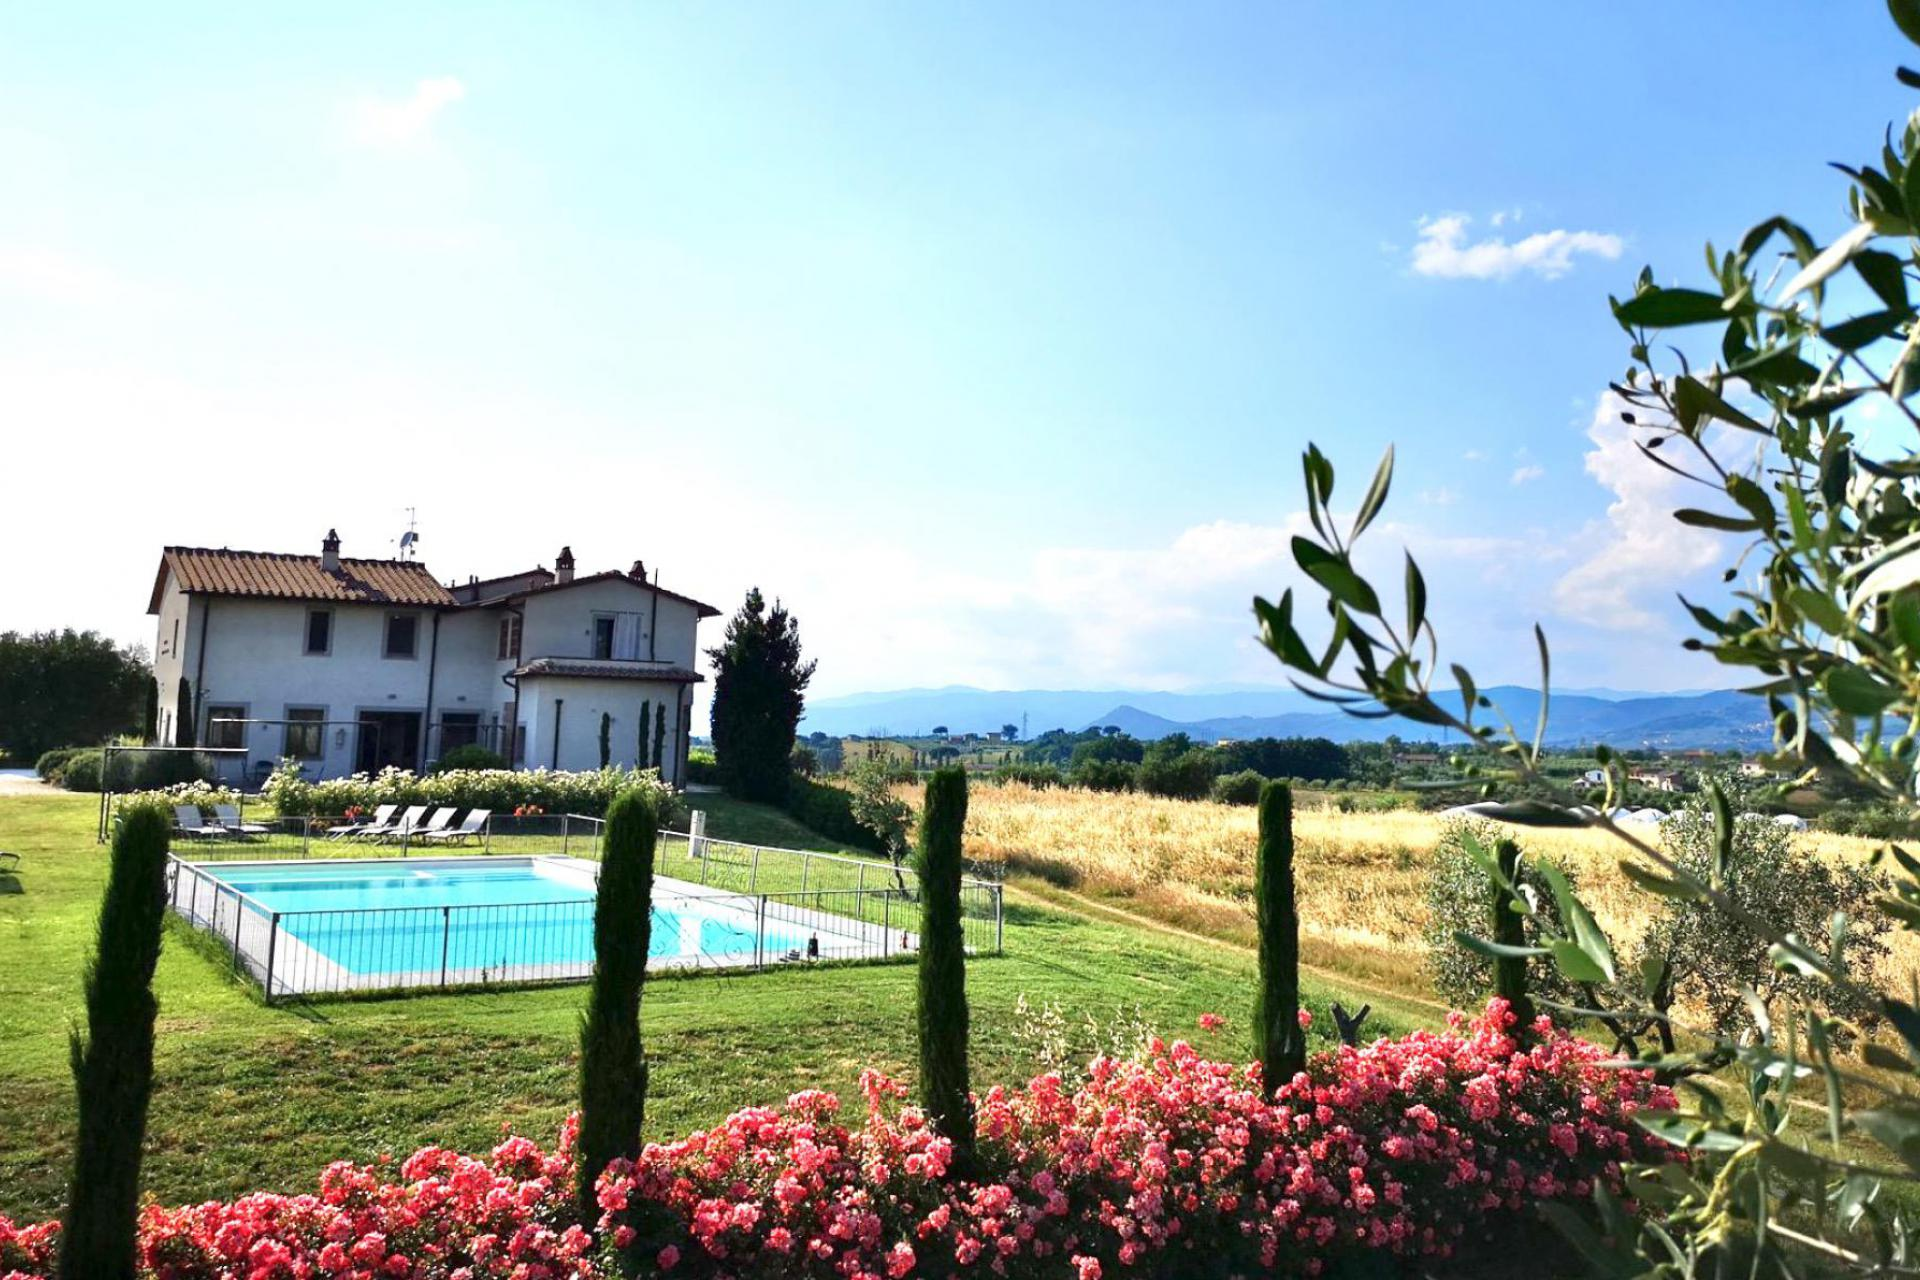 Agriturismo Tuscany Centrally located agriturismo for exploring Tuscany